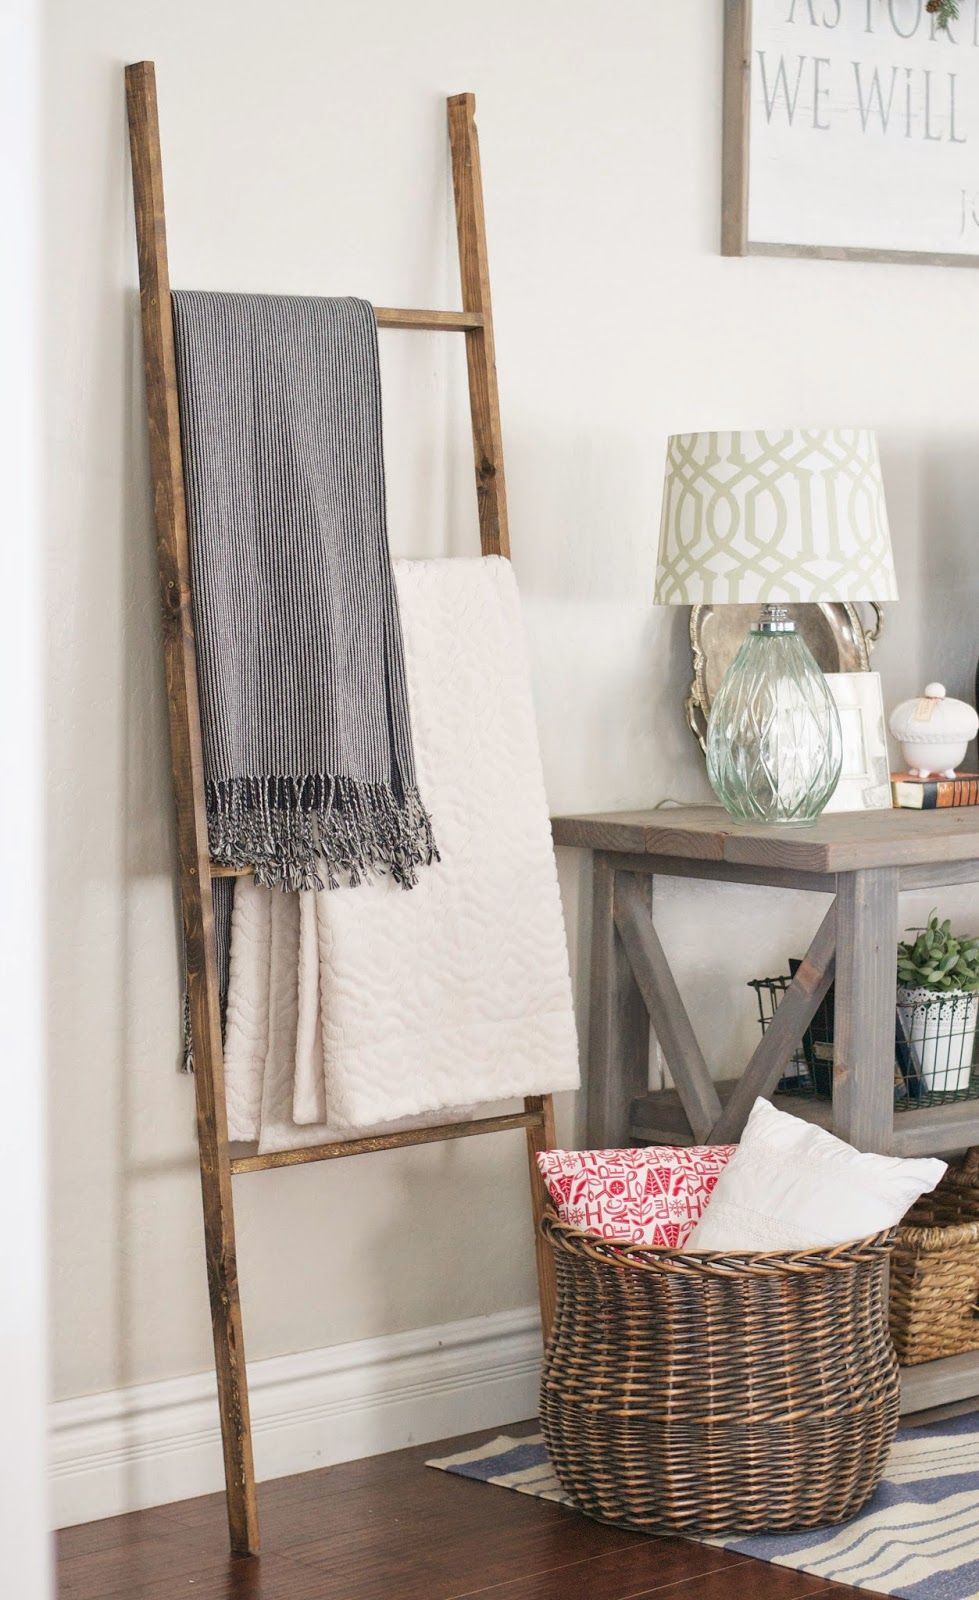 DIY Blanket Ladders Diy blanket ladder, Blanket ladder